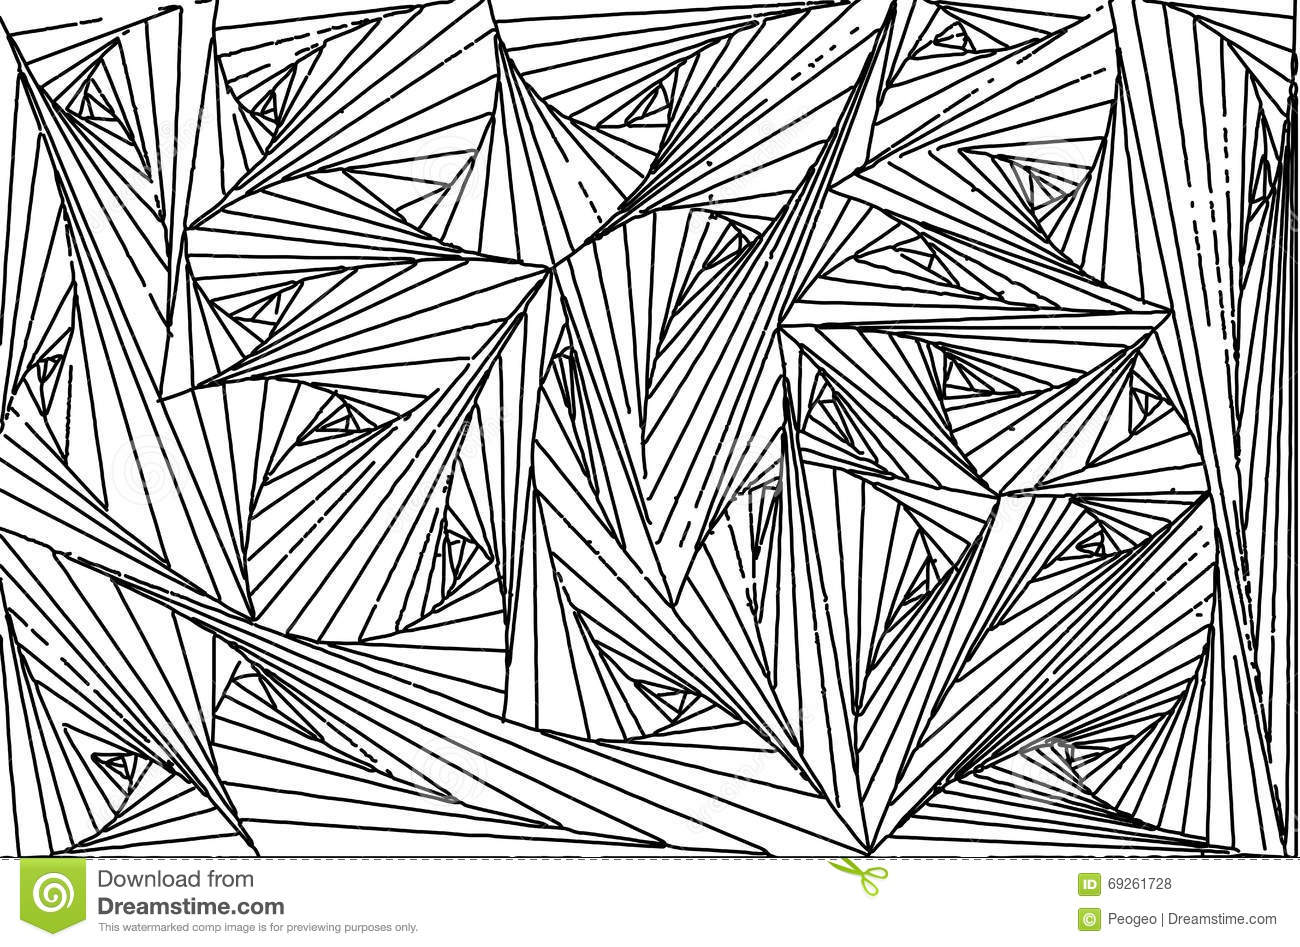 Drawing Lines Libgdx : Easy abstract line drawings imgkid the image